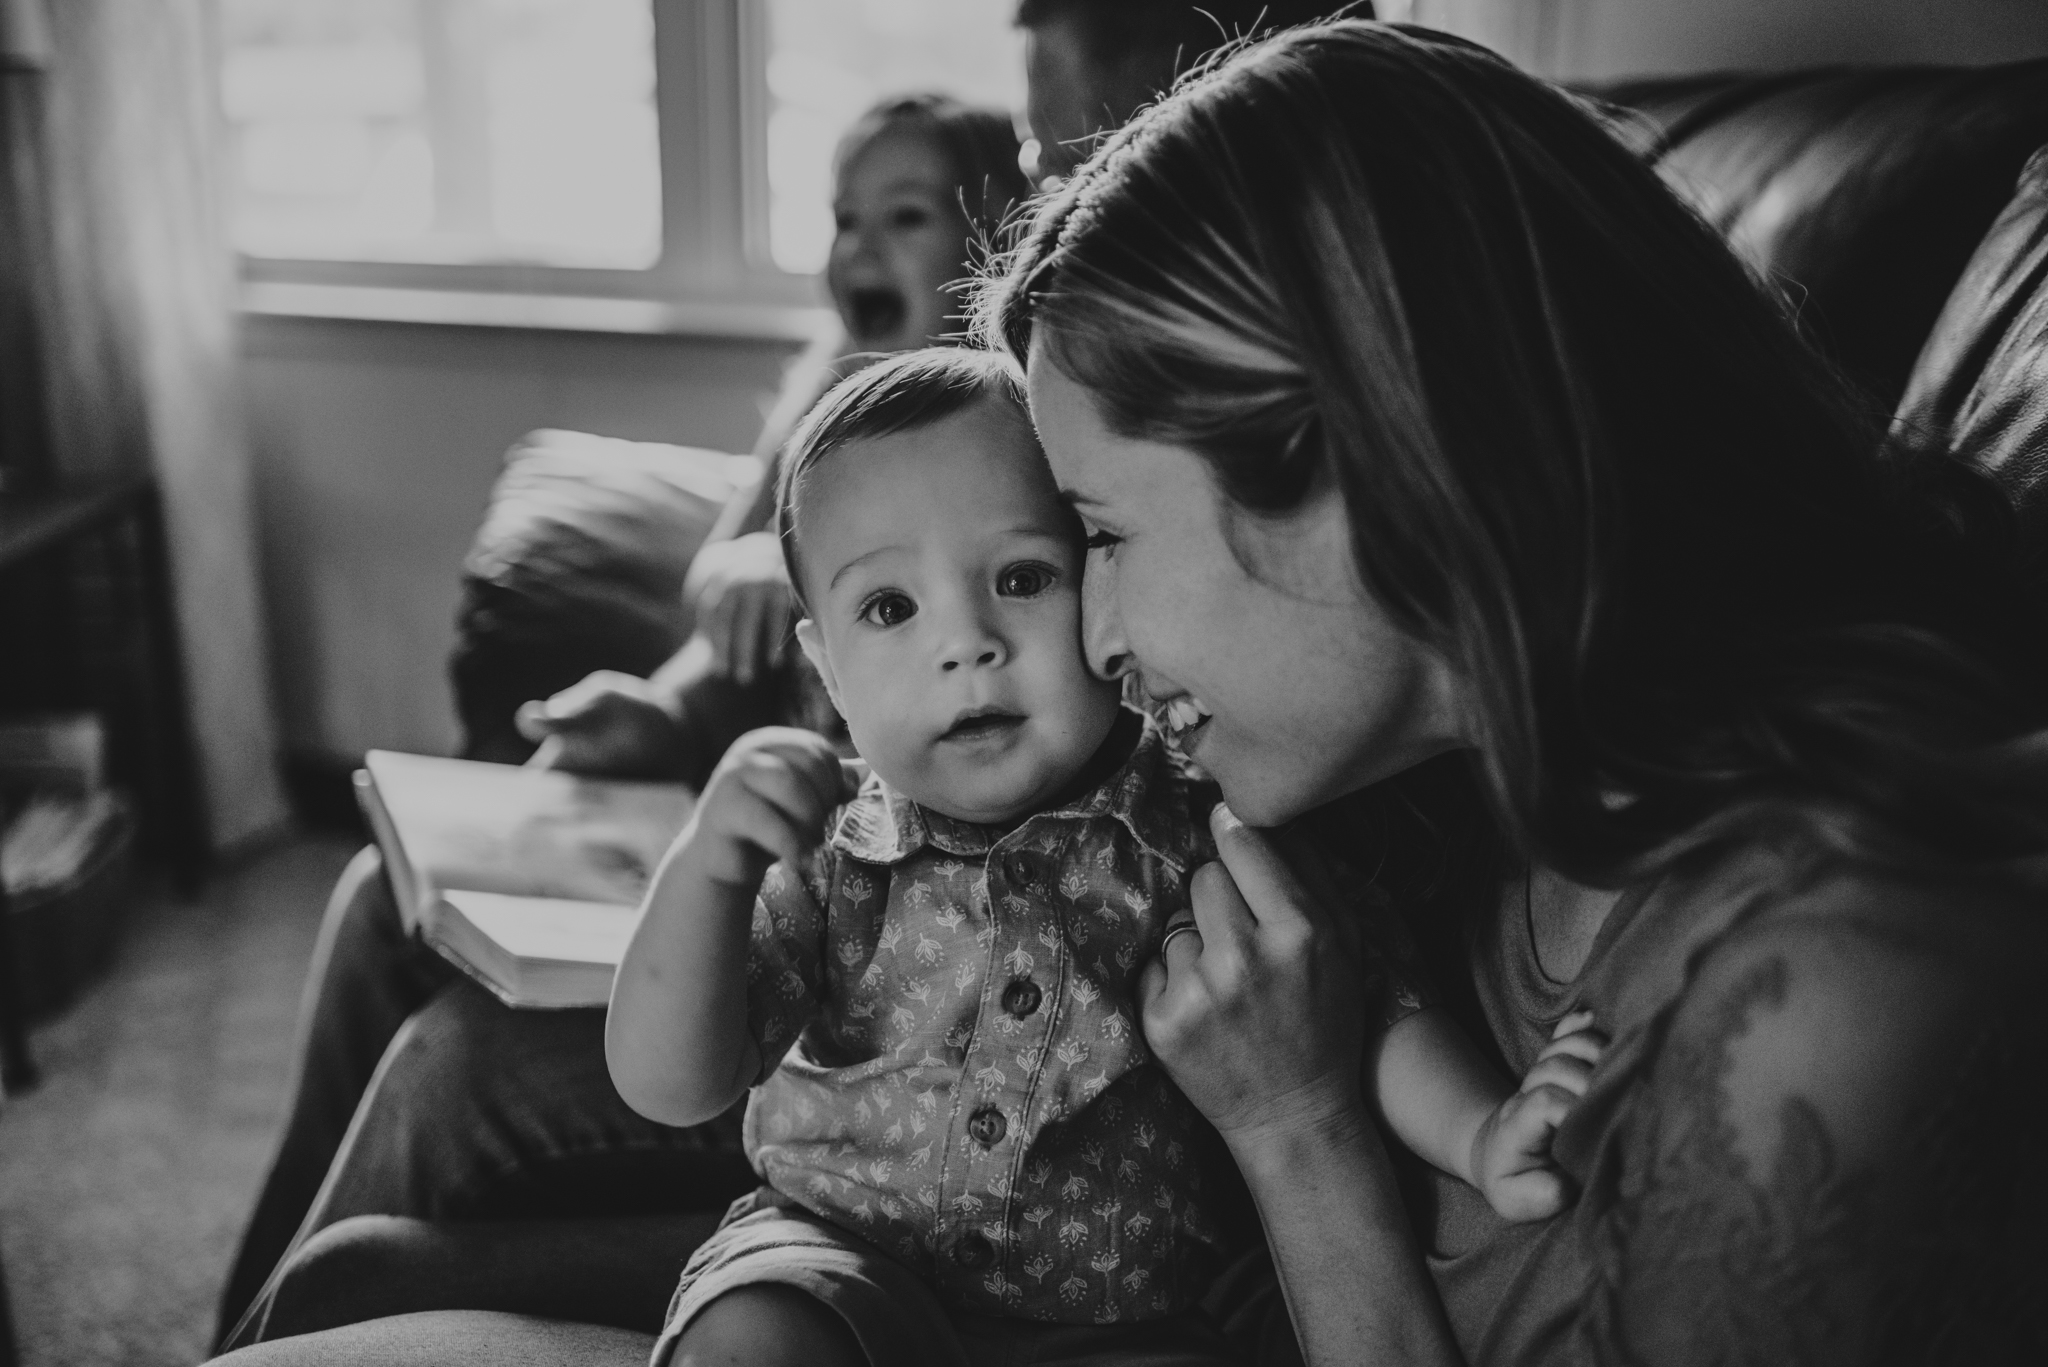 Mommy snuggles baby during story time together on the couch during their lifestyle session at home in Wake Forest with Rose Trail Images.